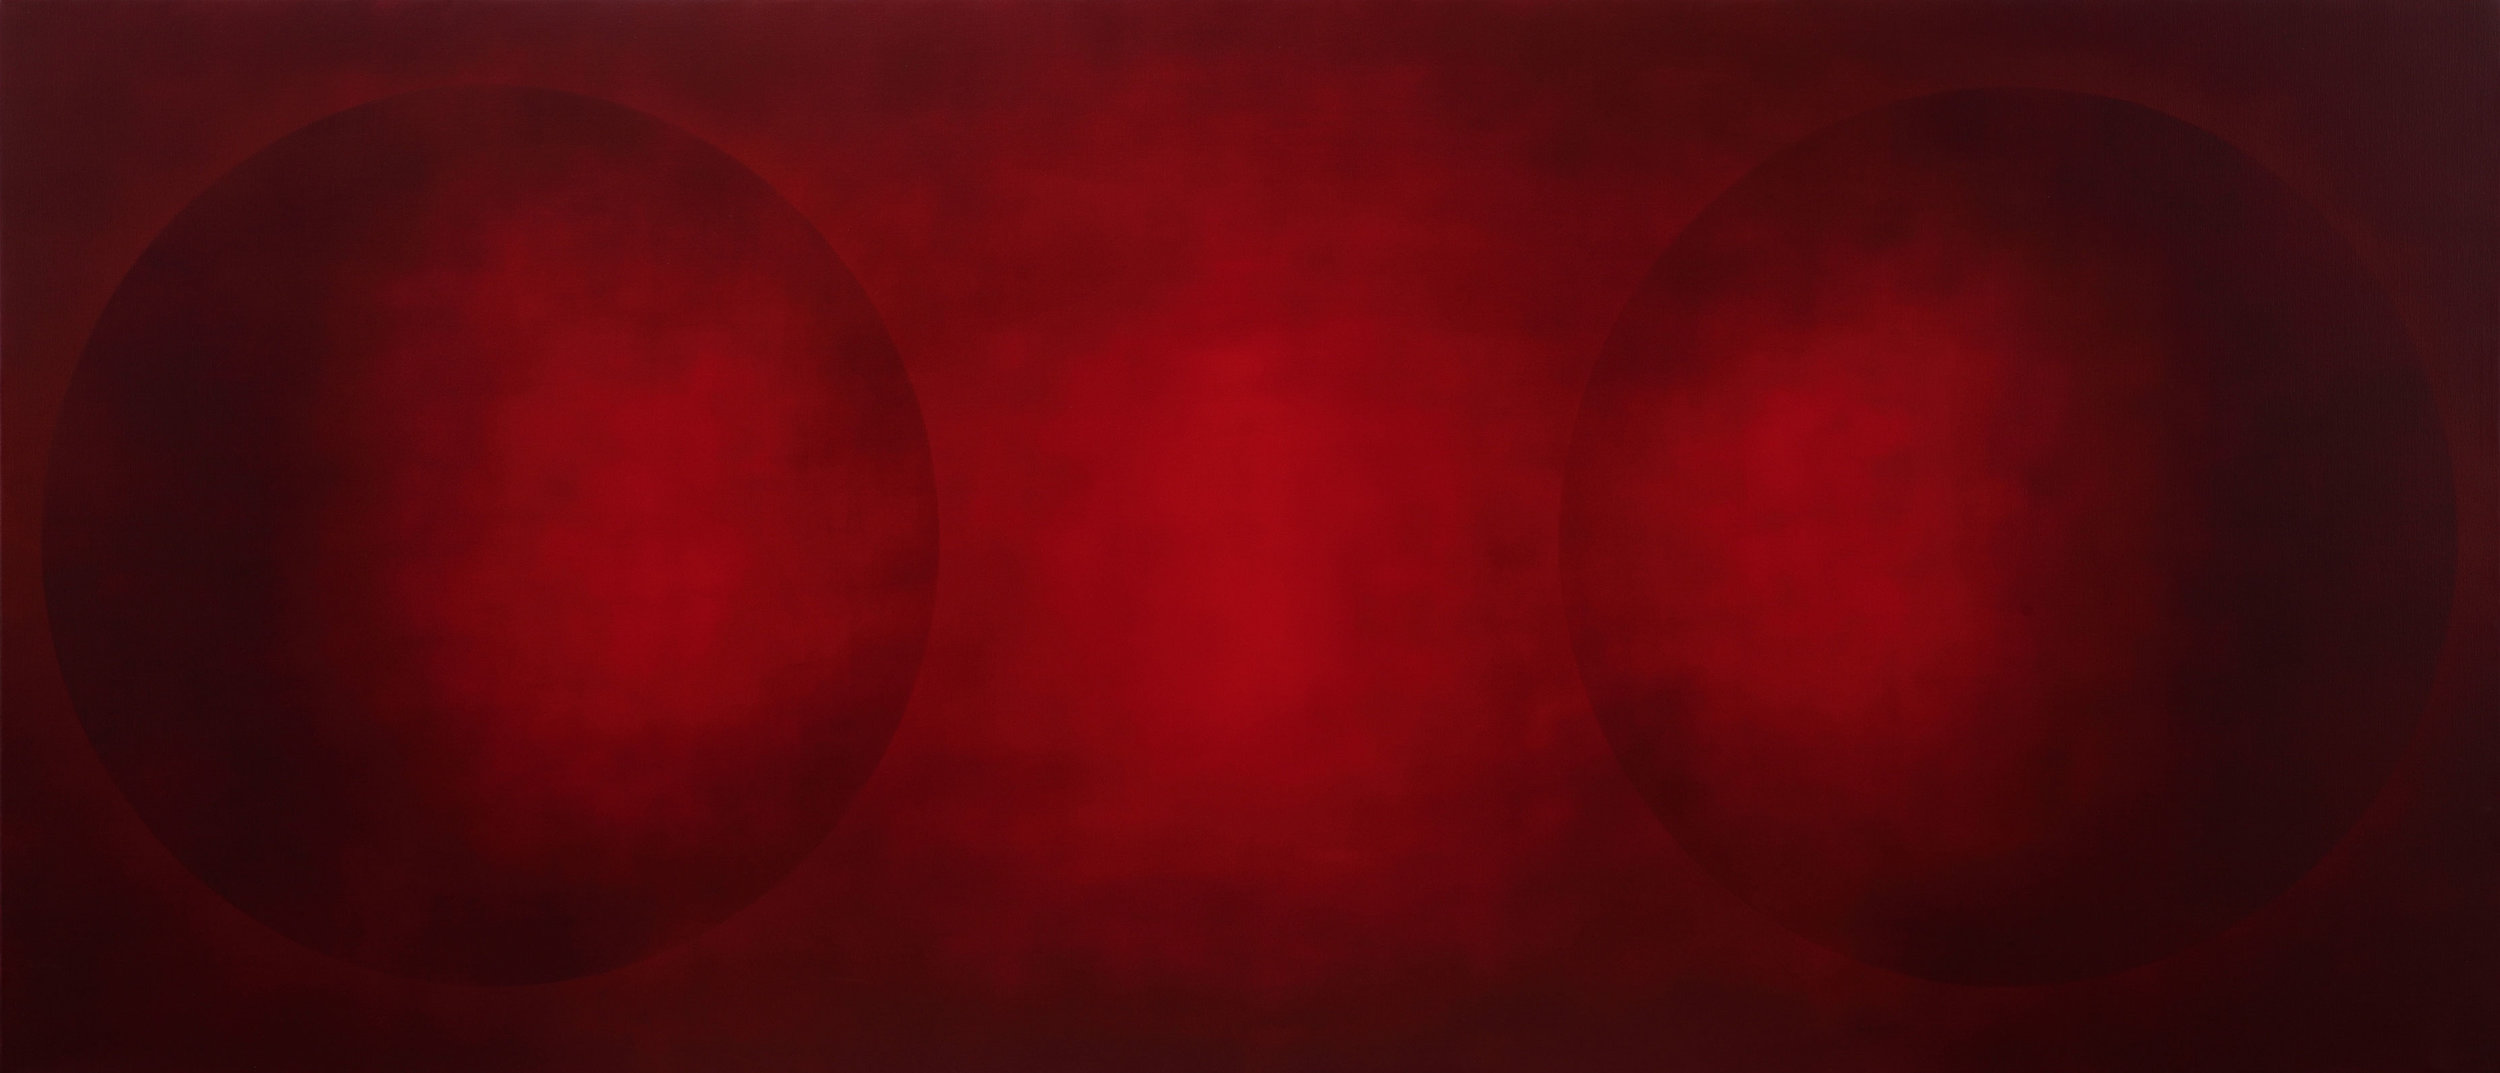 INTERVAL MF CV 2011-2013  acrylic on canvas 130x300 cm  private collection